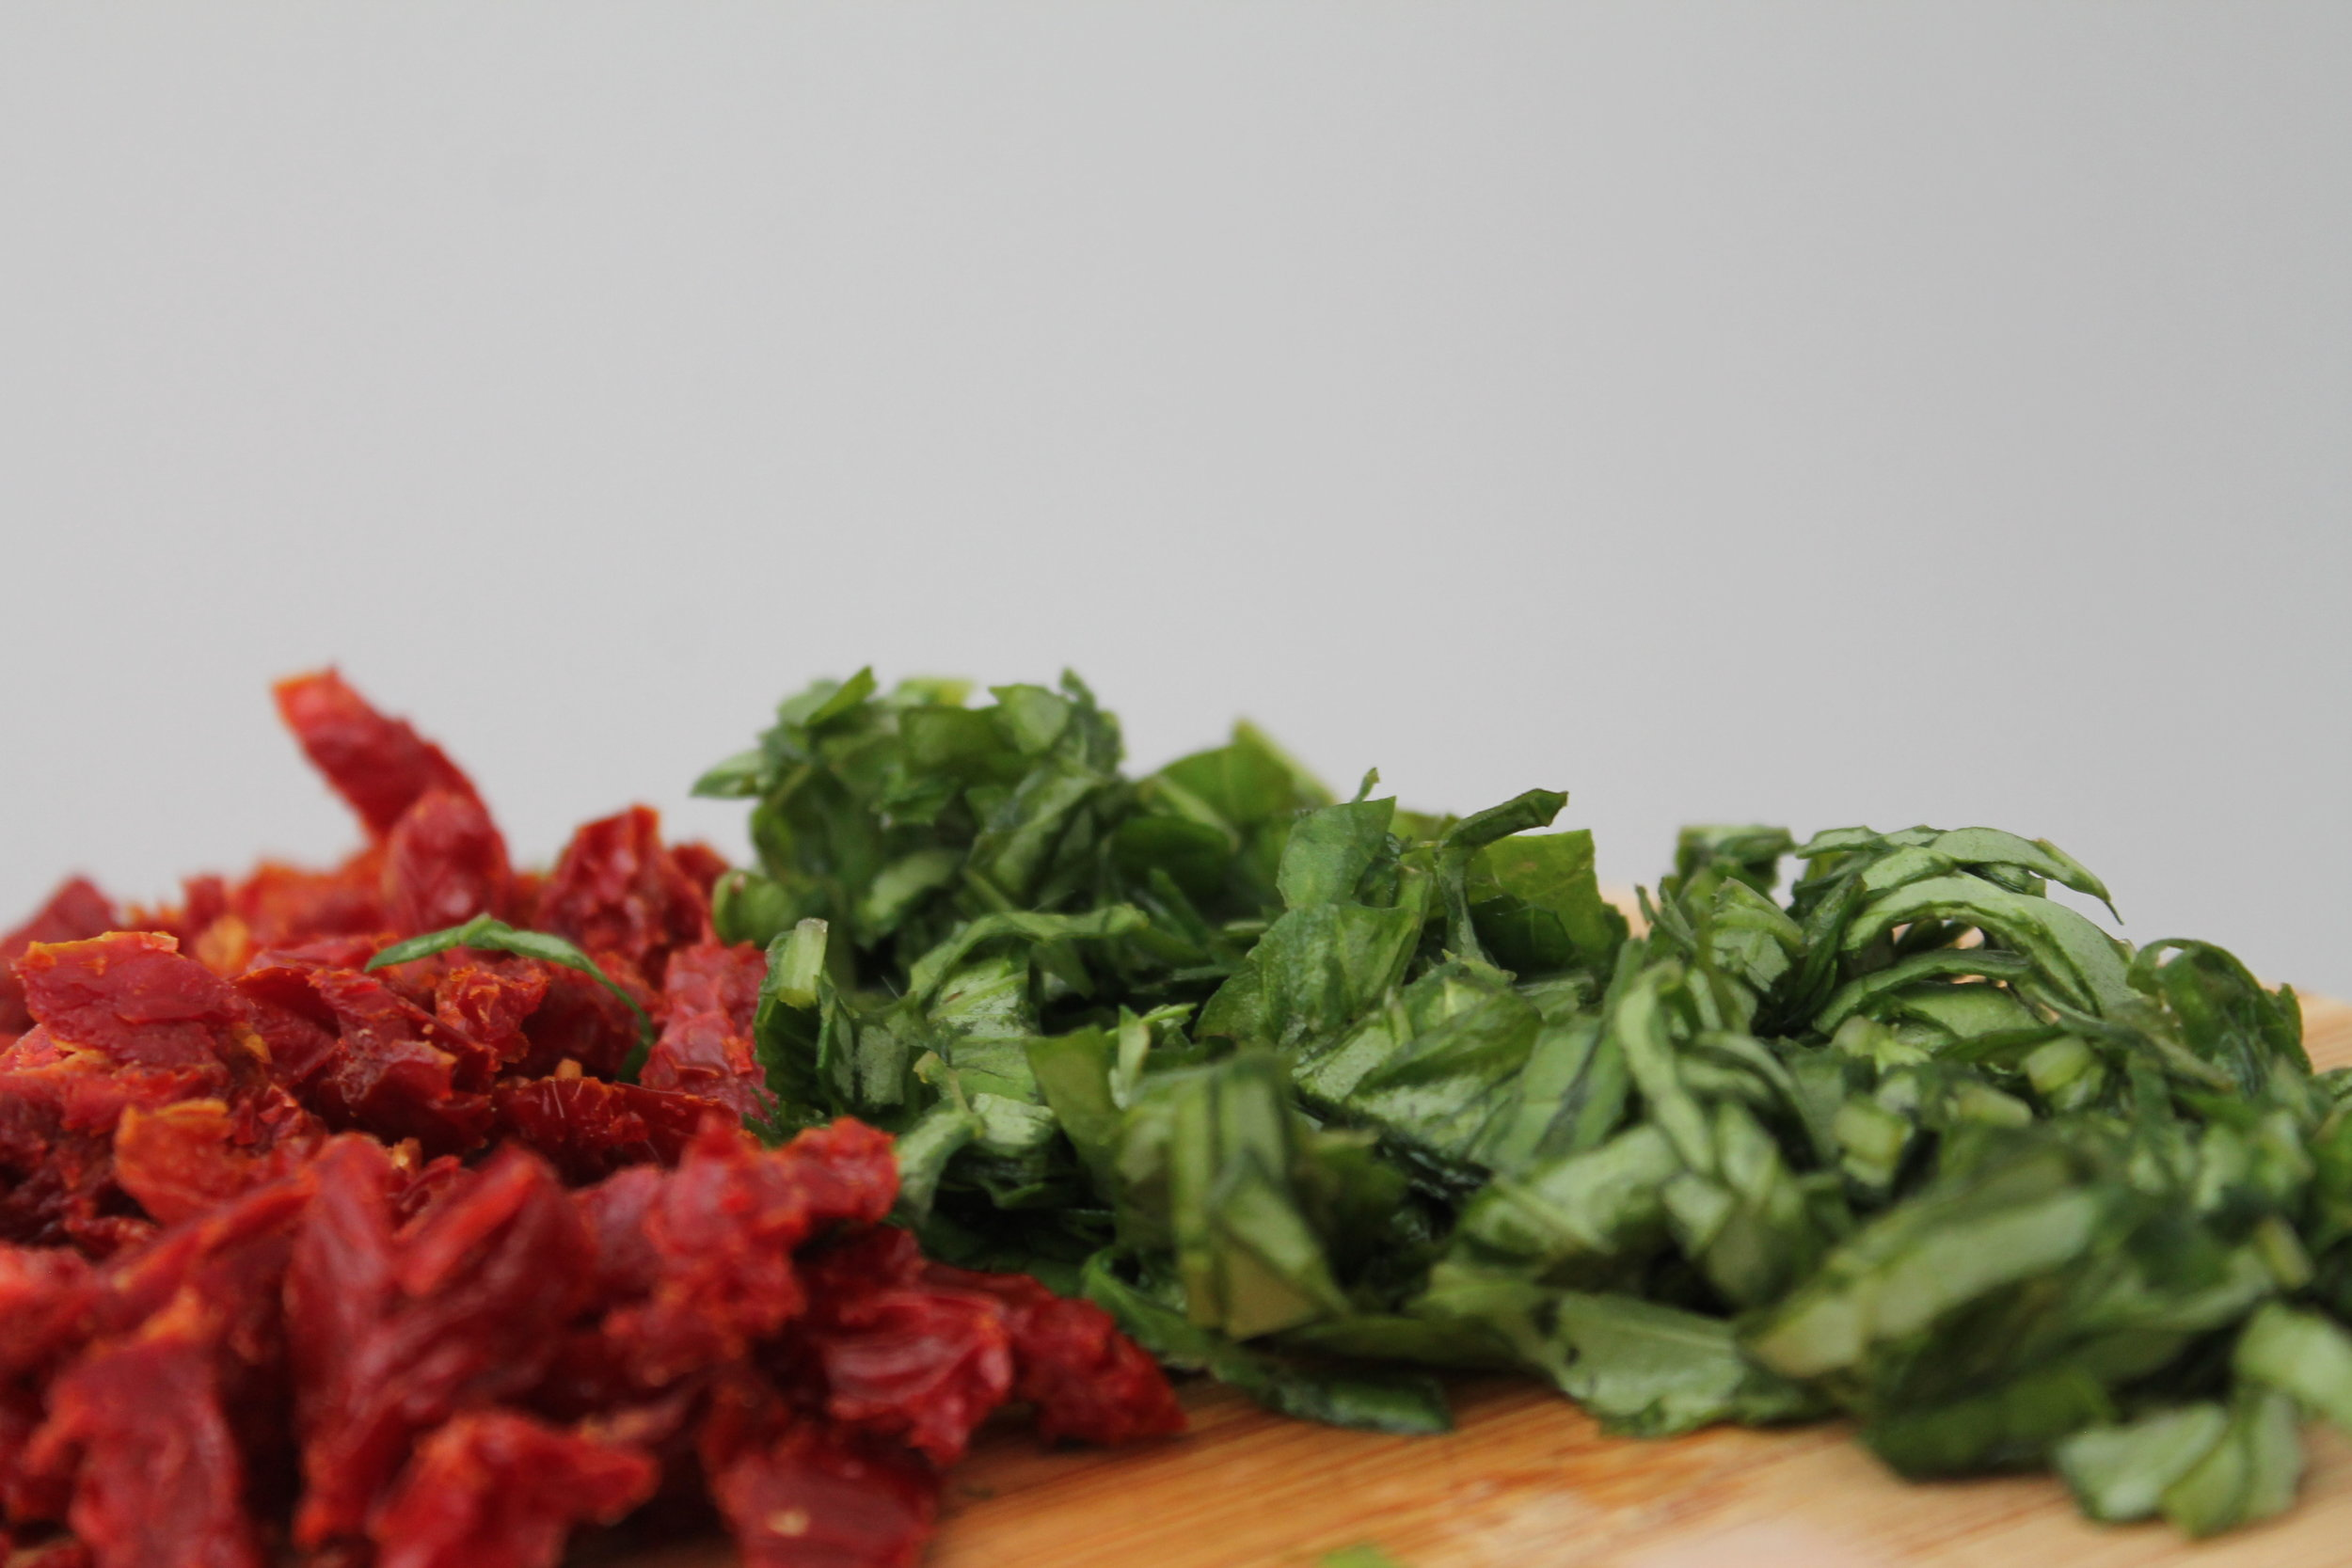 Taste the flavors of summer with this vegan, gluten-free, and raw Sun Dried Tomato and Basil Cashew Cheese. Find the recipe and more at www.fernsandpeonies.com